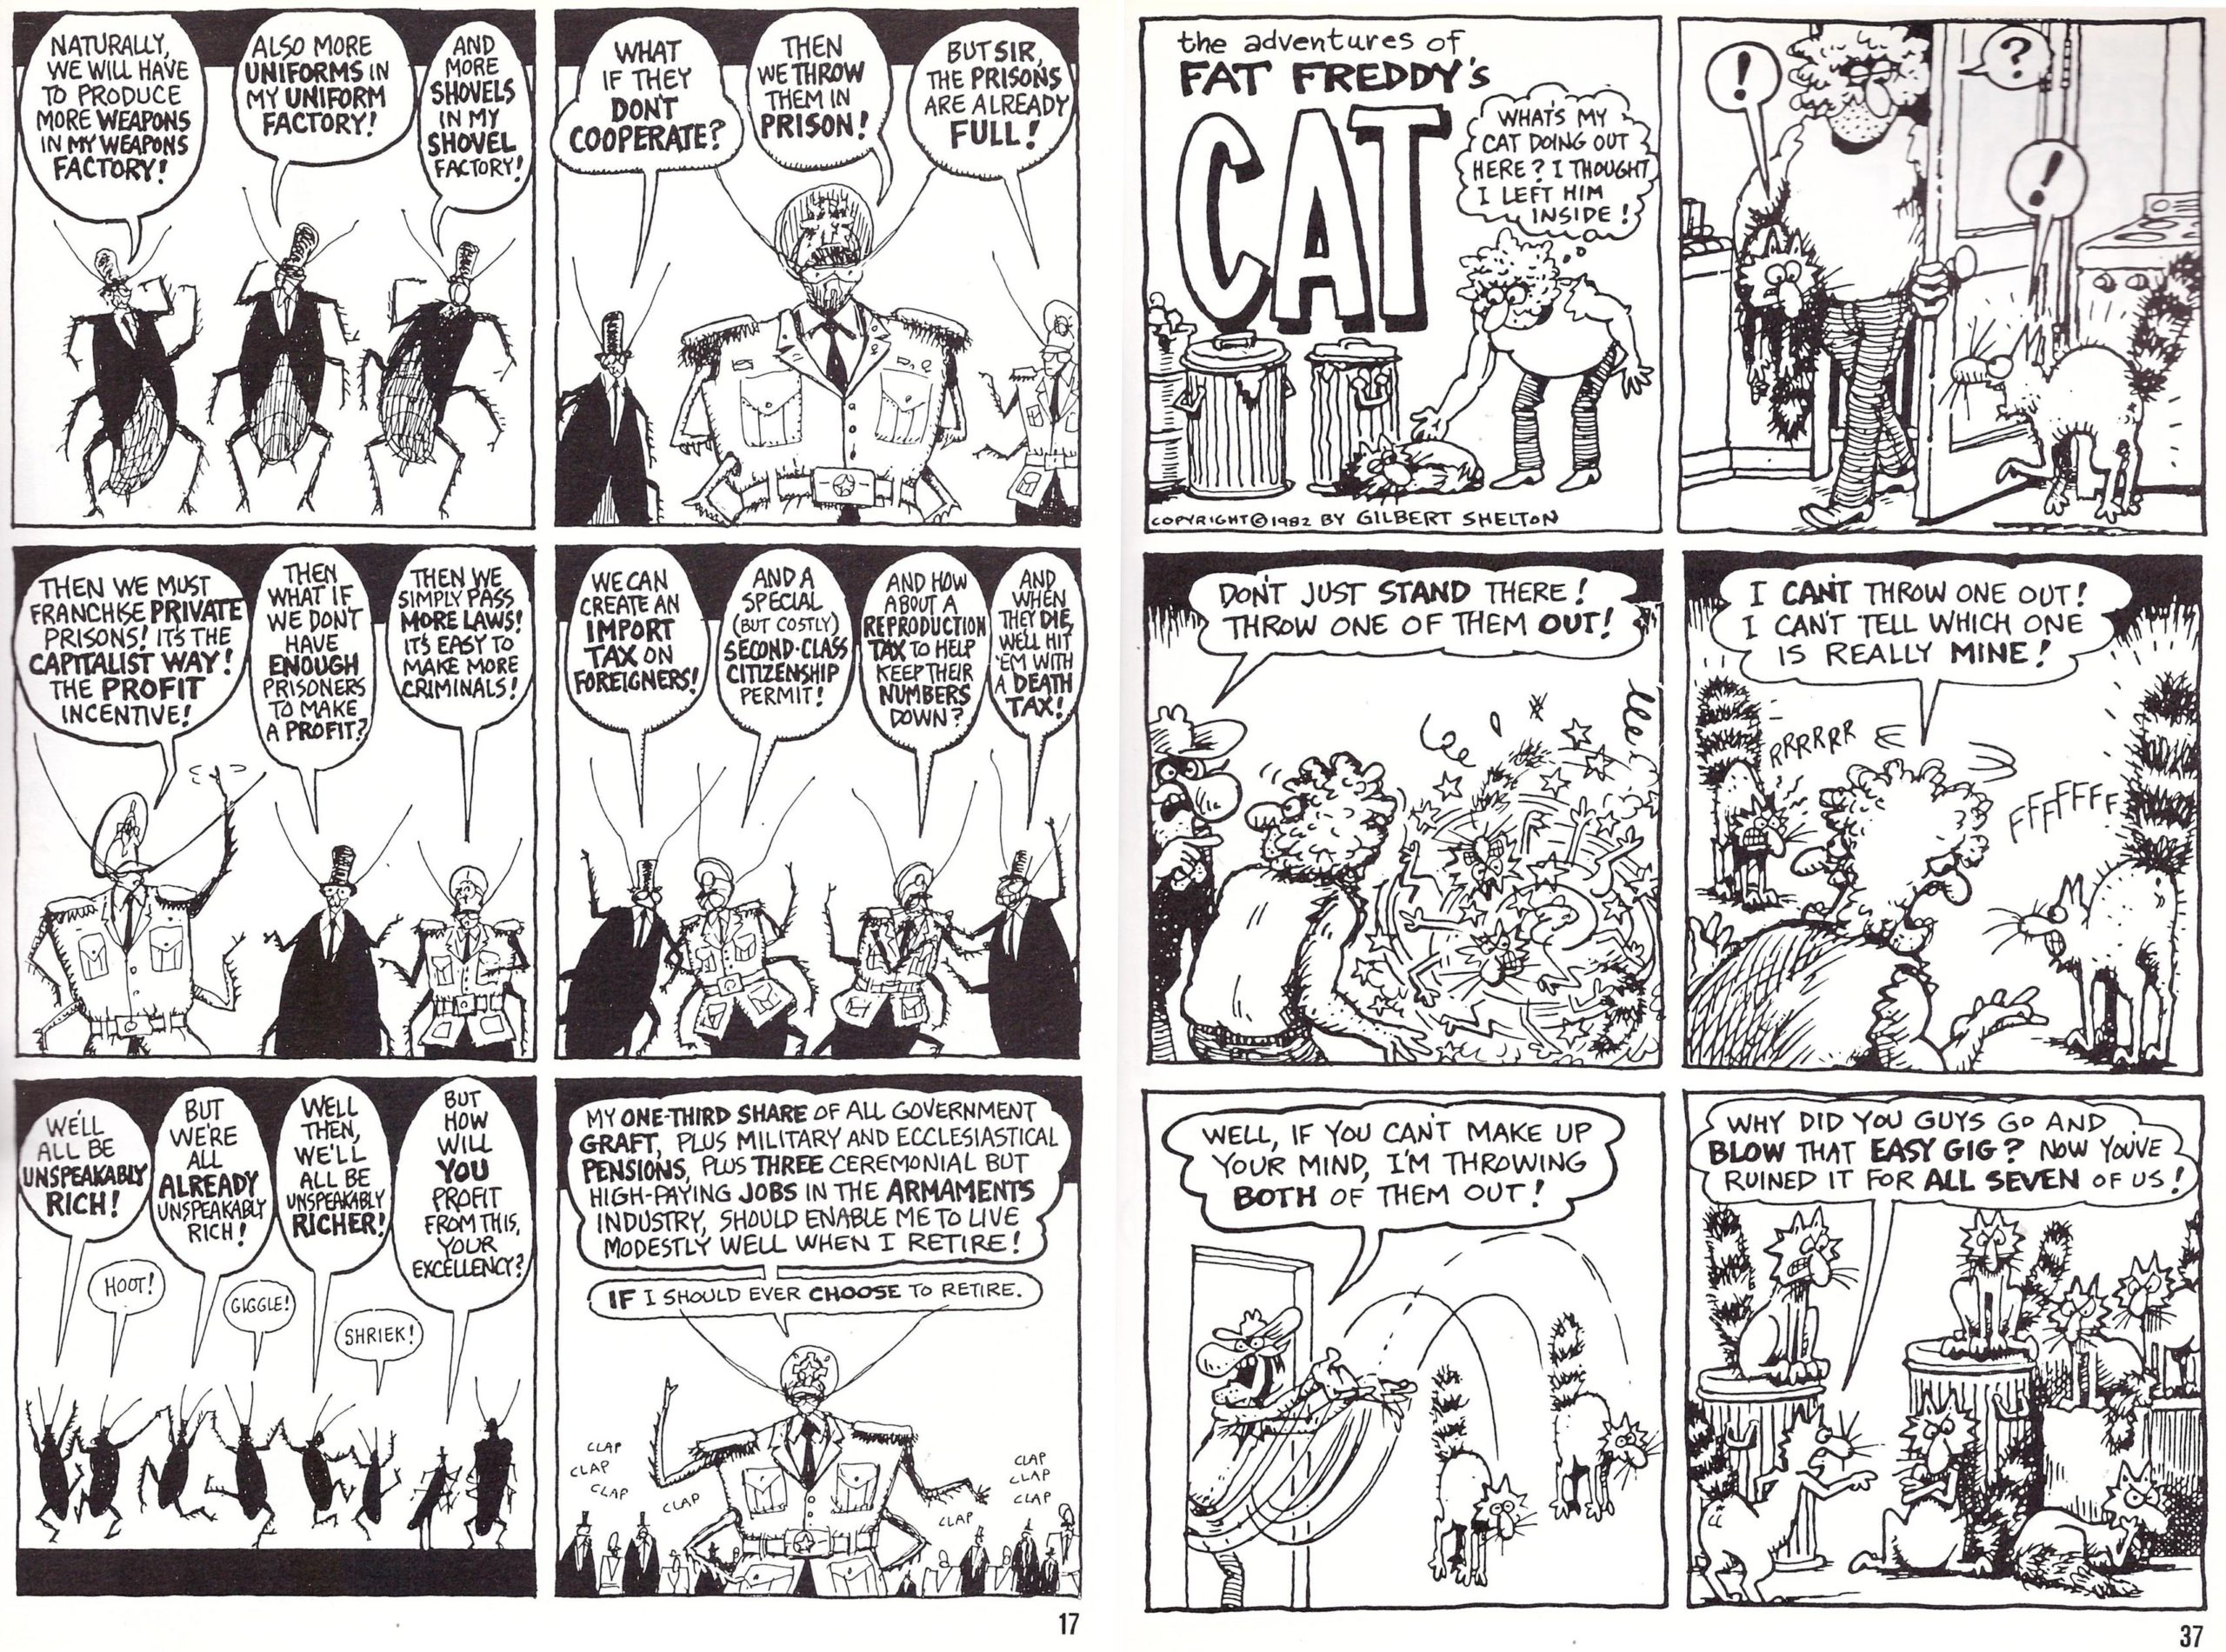 Fat Freddy's Cat War of the Cockroaches review